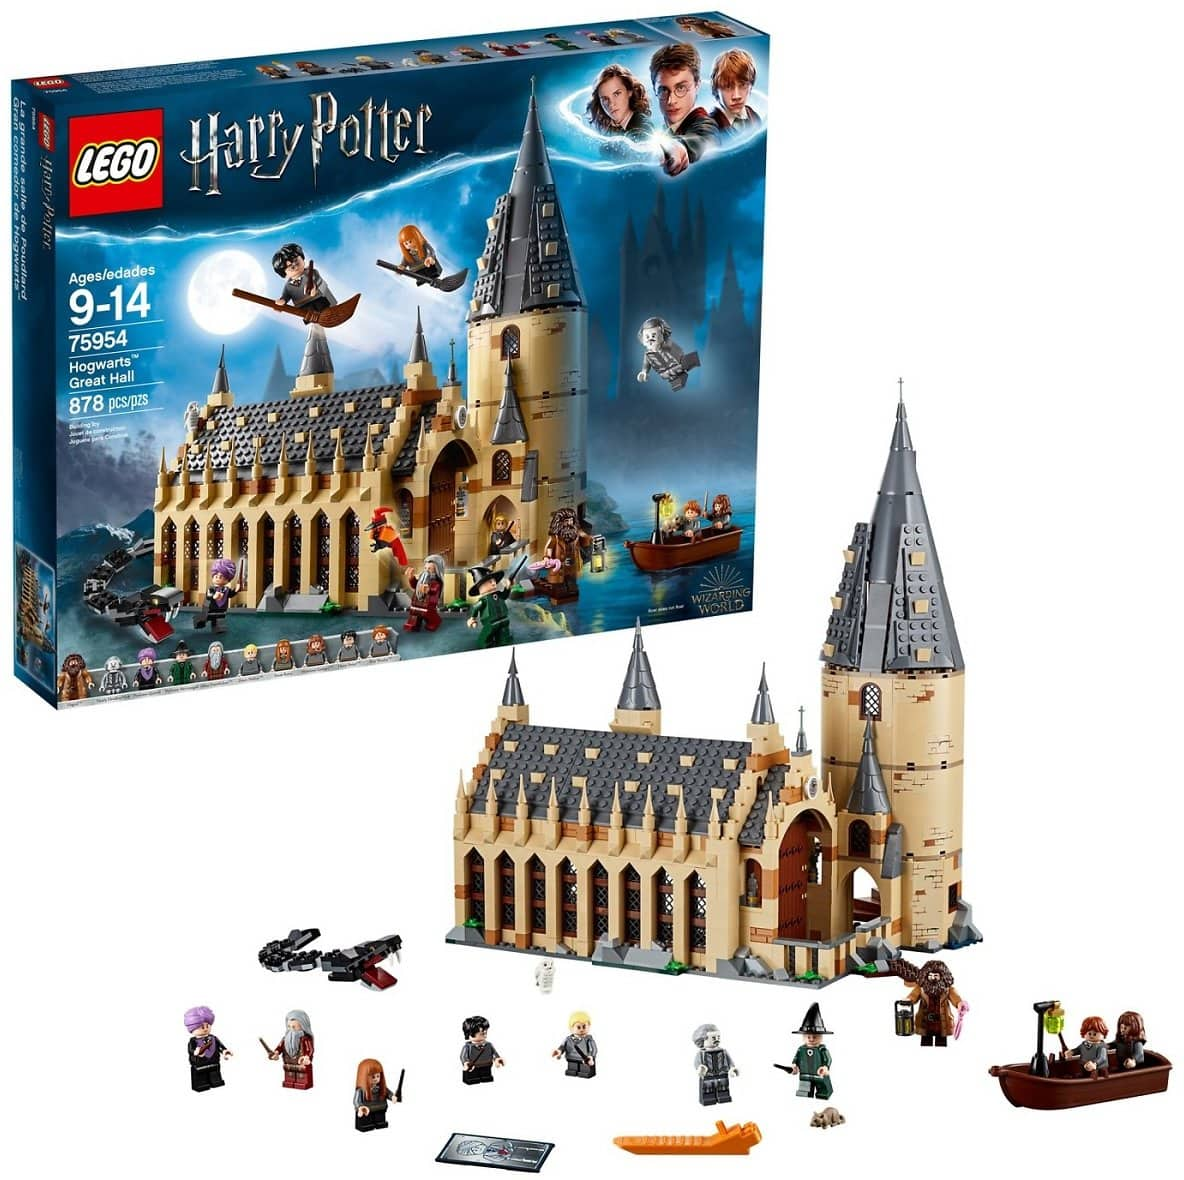 Shipped +  10 Target Gift Card w  LEGO Harry Potter Hogwarts Great Hall  75954  99.99 b11266be9c2a8